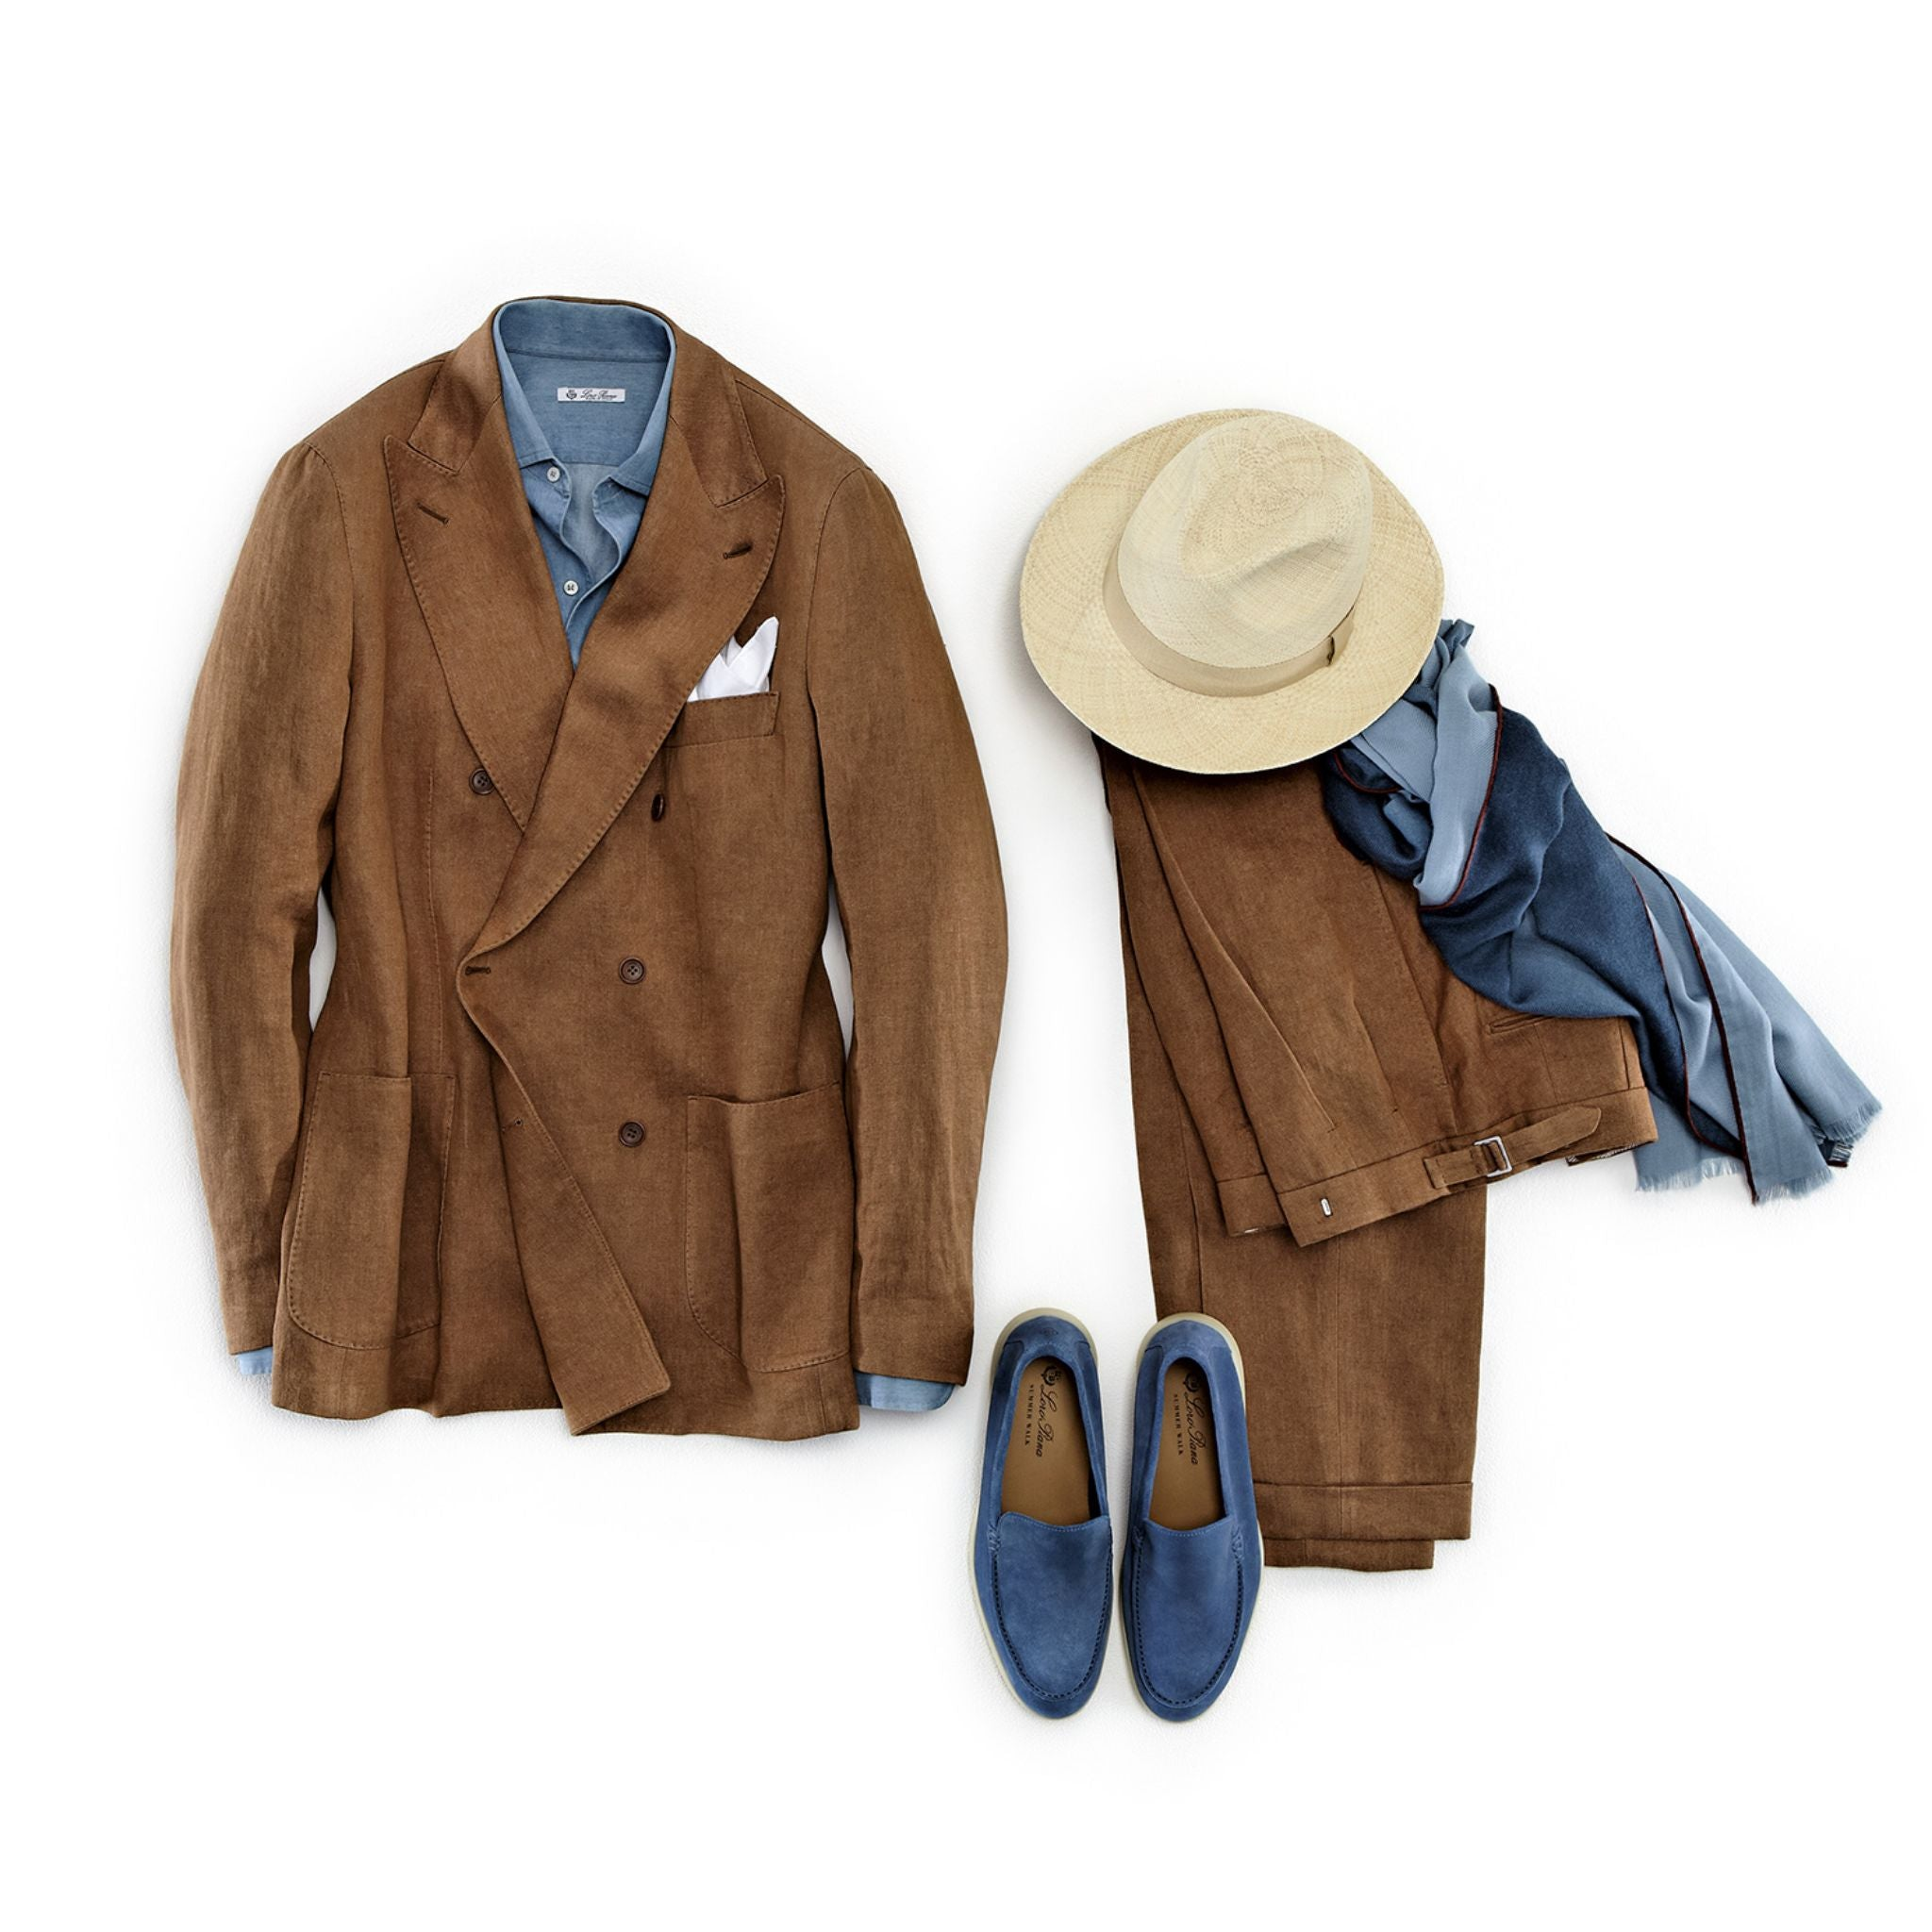 Loro Piana spring and summer 2016 double-breasted linen suit with denim shirt